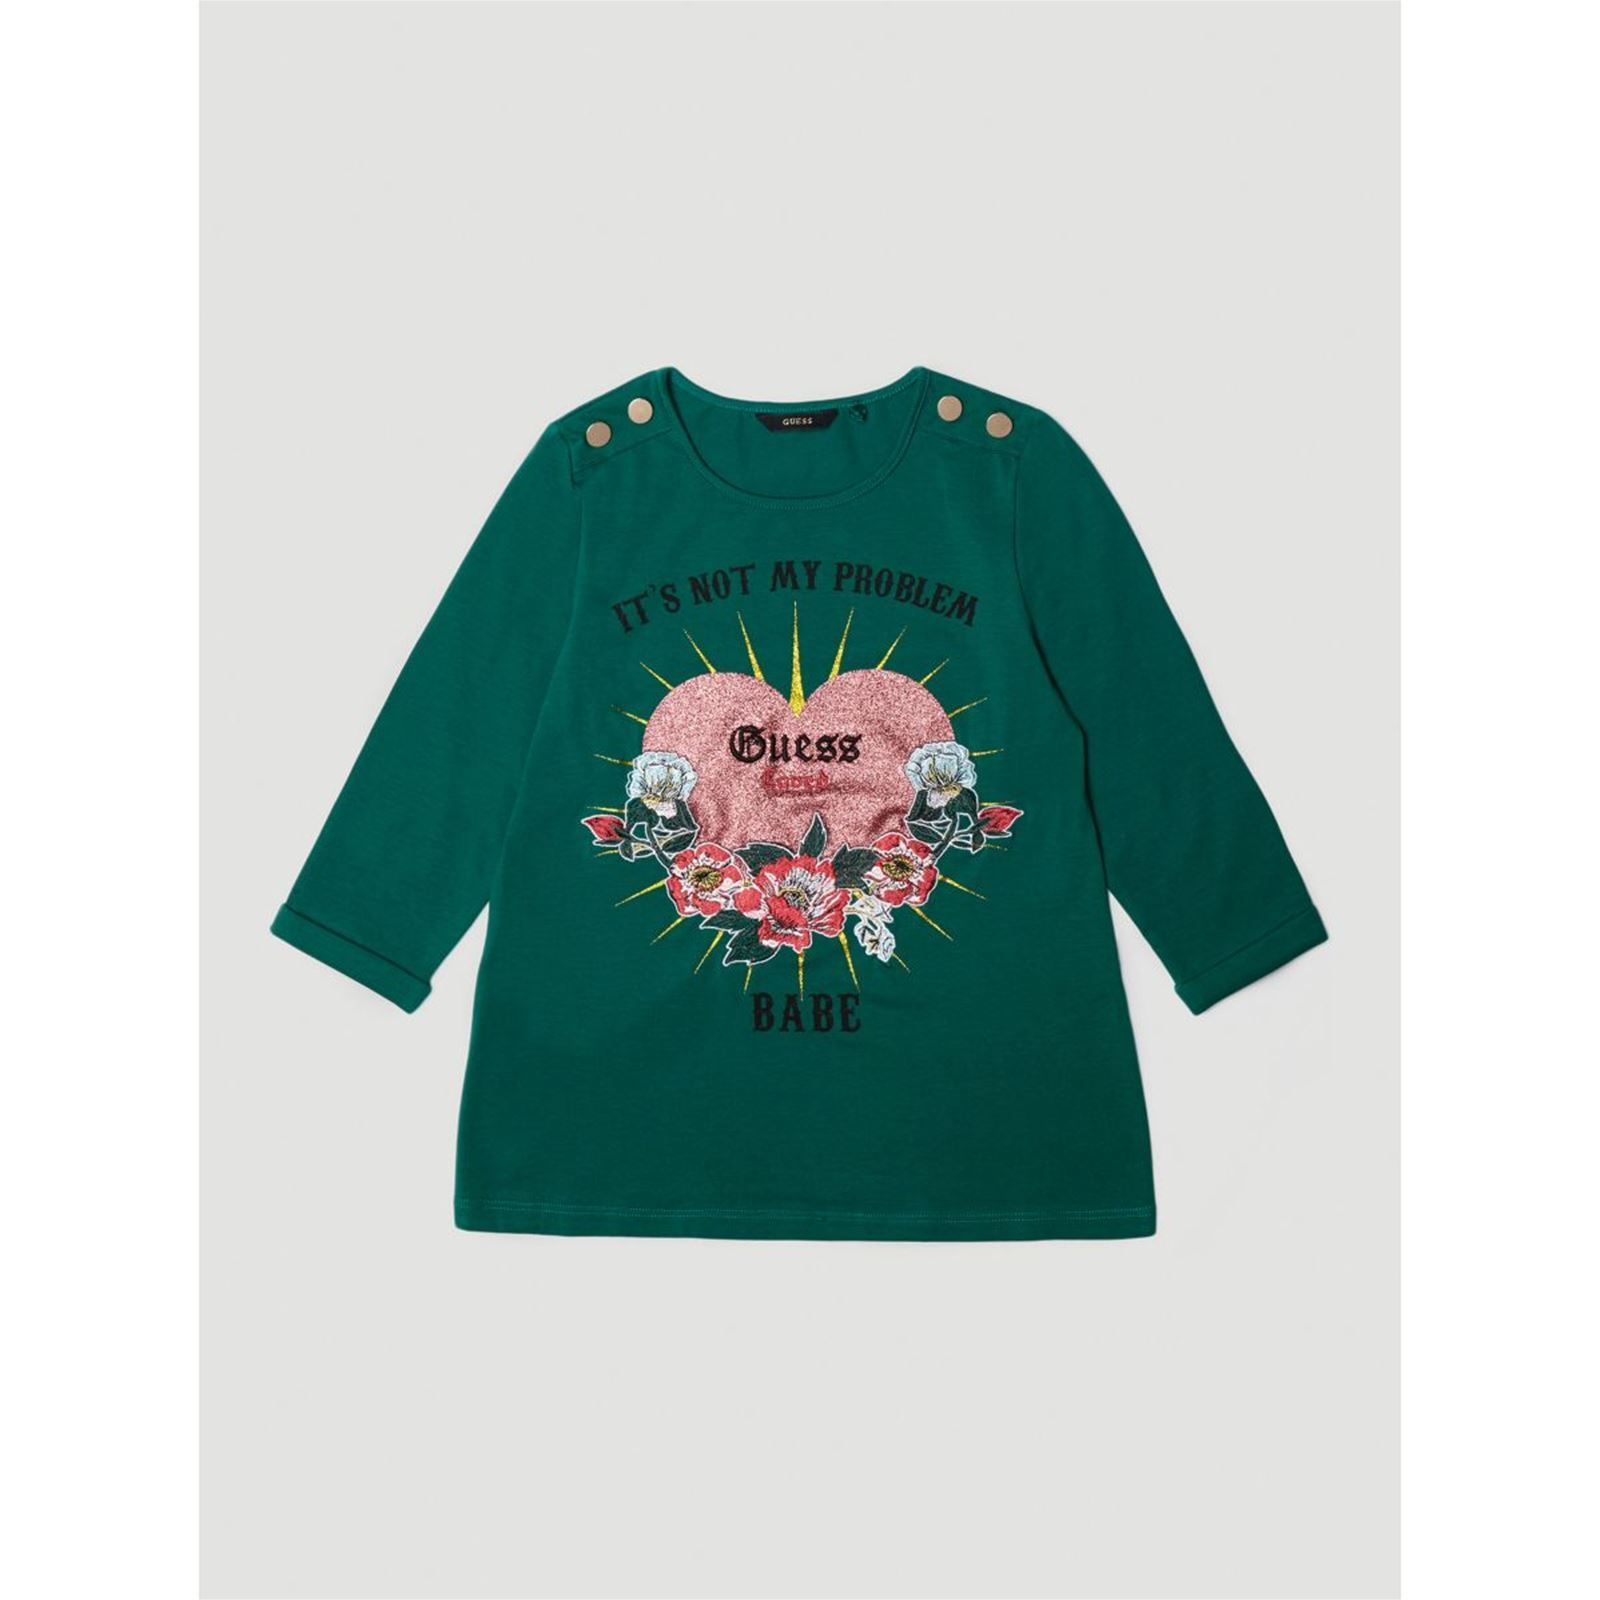 Guess Kids T-shirt imprimé frontal - vert   BrandAlley 3353c0295268